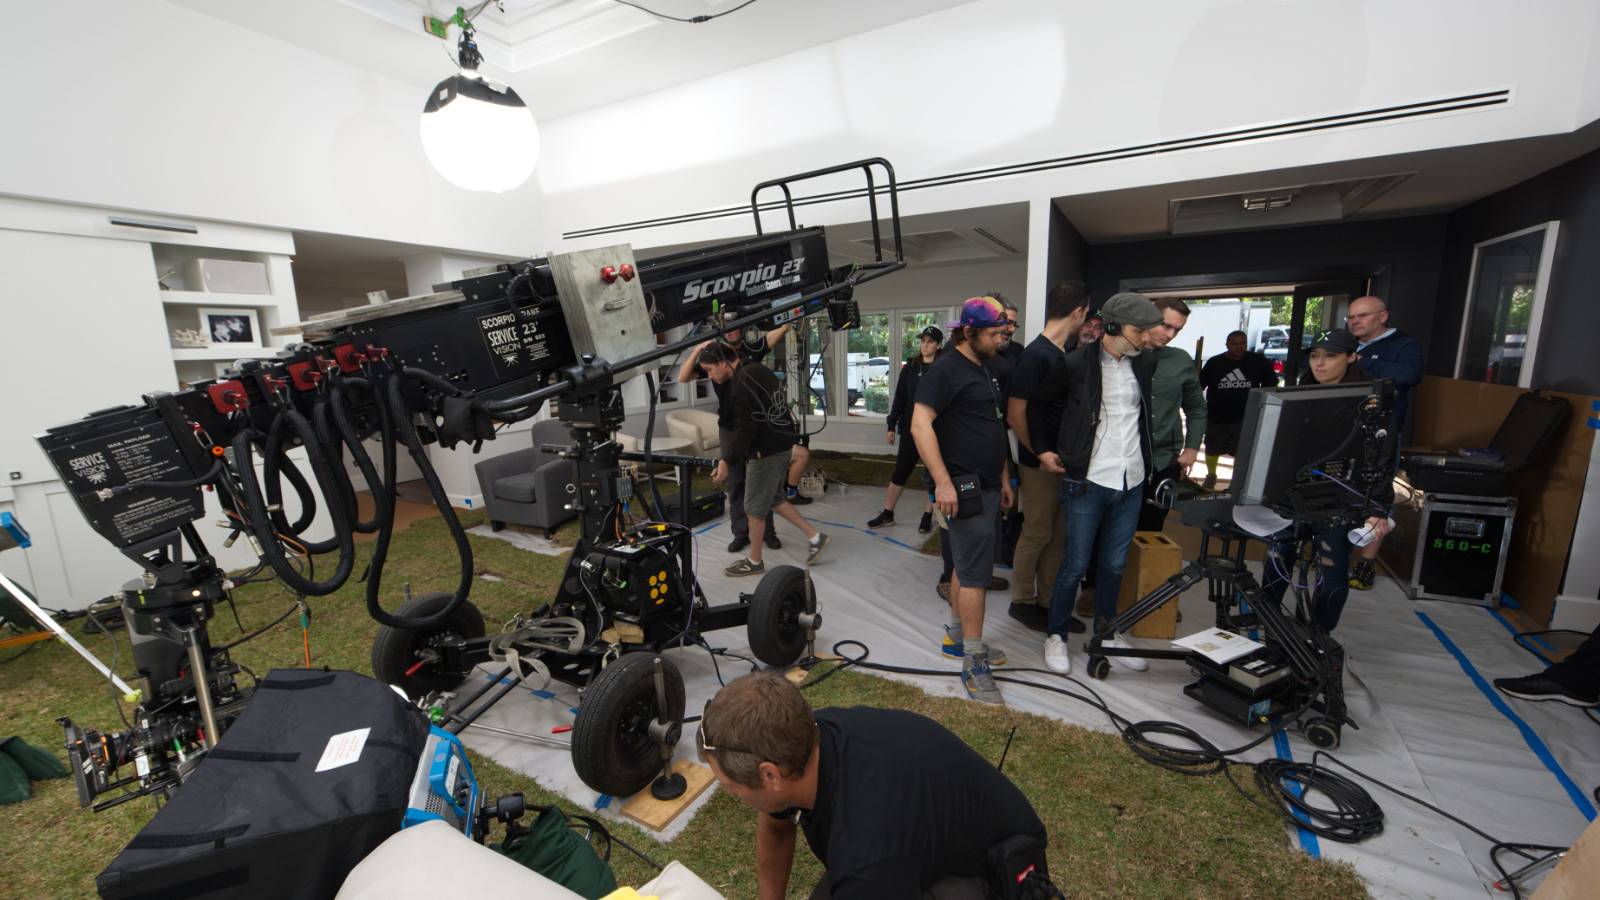 Husqvarna Auto Mower - Artex Productions - Top Video Production Company for Television Advertisements in Miami, FL